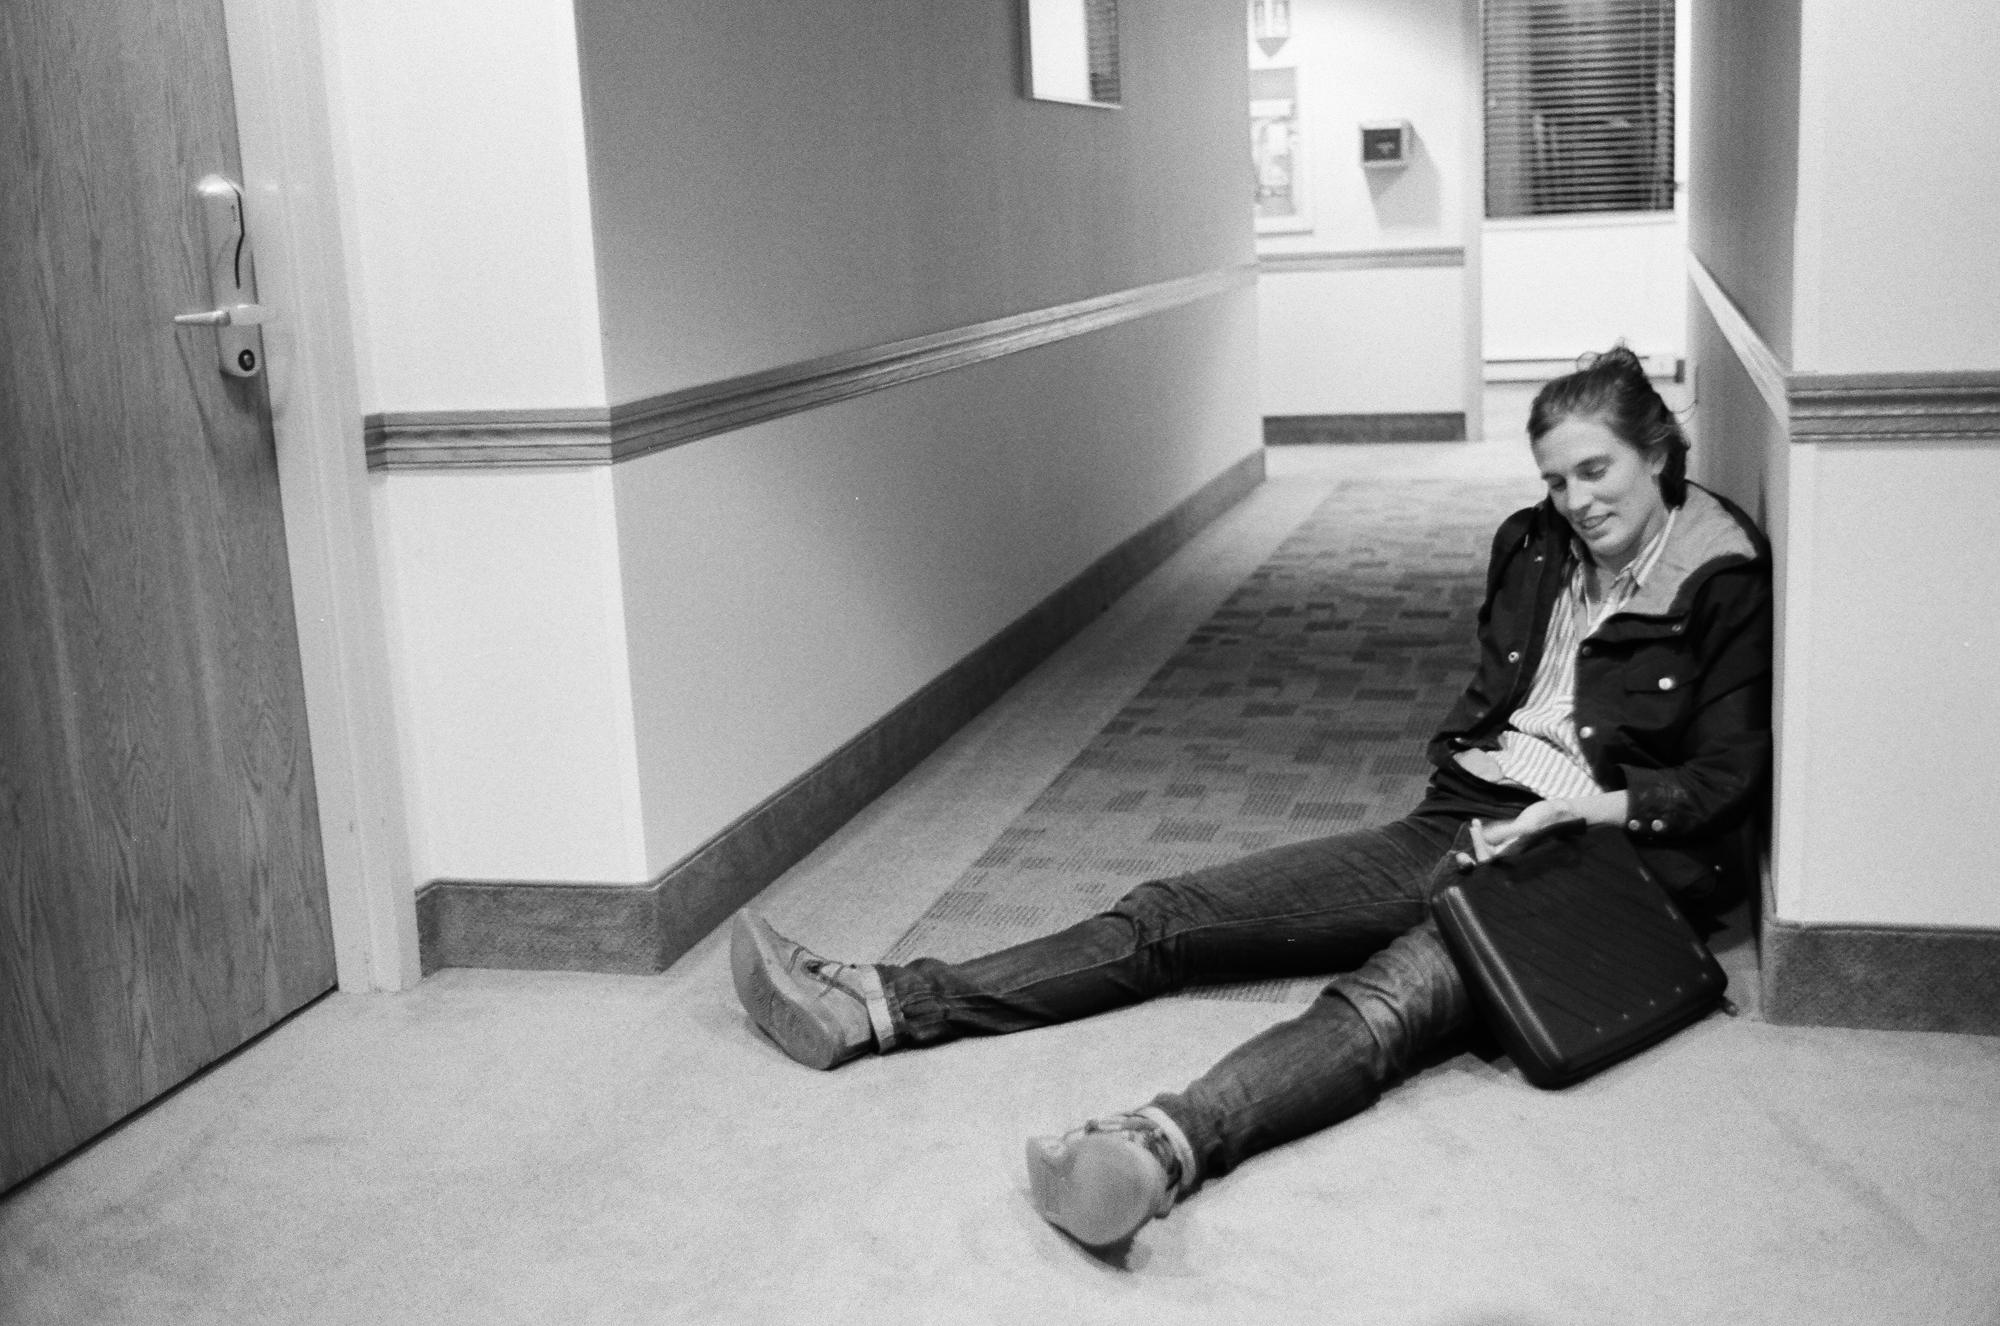 """Journalist Sara LaFleur-Vetter sits exhausted outside her hotel room awaiting a new door key at the Prairie Nights Casino in Fort Yates, North Dakota after a long day covering the indigenous led fight against the Dakota Access Pipeline in 2016. SLV is Director and Director of Photography of the feature documentary film """"The Sacred and The Snake,"""" alongside team members Jonathan Klett, Romin Lee Johnson, Tracy Rector, Jean Kawahara and Jordan Marie Brings Three White Horses Daniel. Their own words are below. """"The Sacred & The Snake focuses on how the experience of collective trauma, cultural self-discovery, and non-violent direct action catalyzed an array of other resistance movements across the country. While much of the public accepts the media narrative that Standing Rock was a failure, these protagonists defiantly show otherwise. The resistance camps lit a fire in each one of them and set them on a new path, while reawakening a global awareness of the environment and Indigenous sovereignty. We are a collaborative filmmaking team - a group of non-Native filmmakers working alongside a prolific group of Indigenous producers and advisors that are holding us accountable as we embark on this process. We are committed to working within the #decolonizedocs movement and guidelines. Everyday we learn more about how we can humble ourselves in this process, amplify Indigenous voices to guide the project, and redistribute our privilege and power in a productive way."""""""